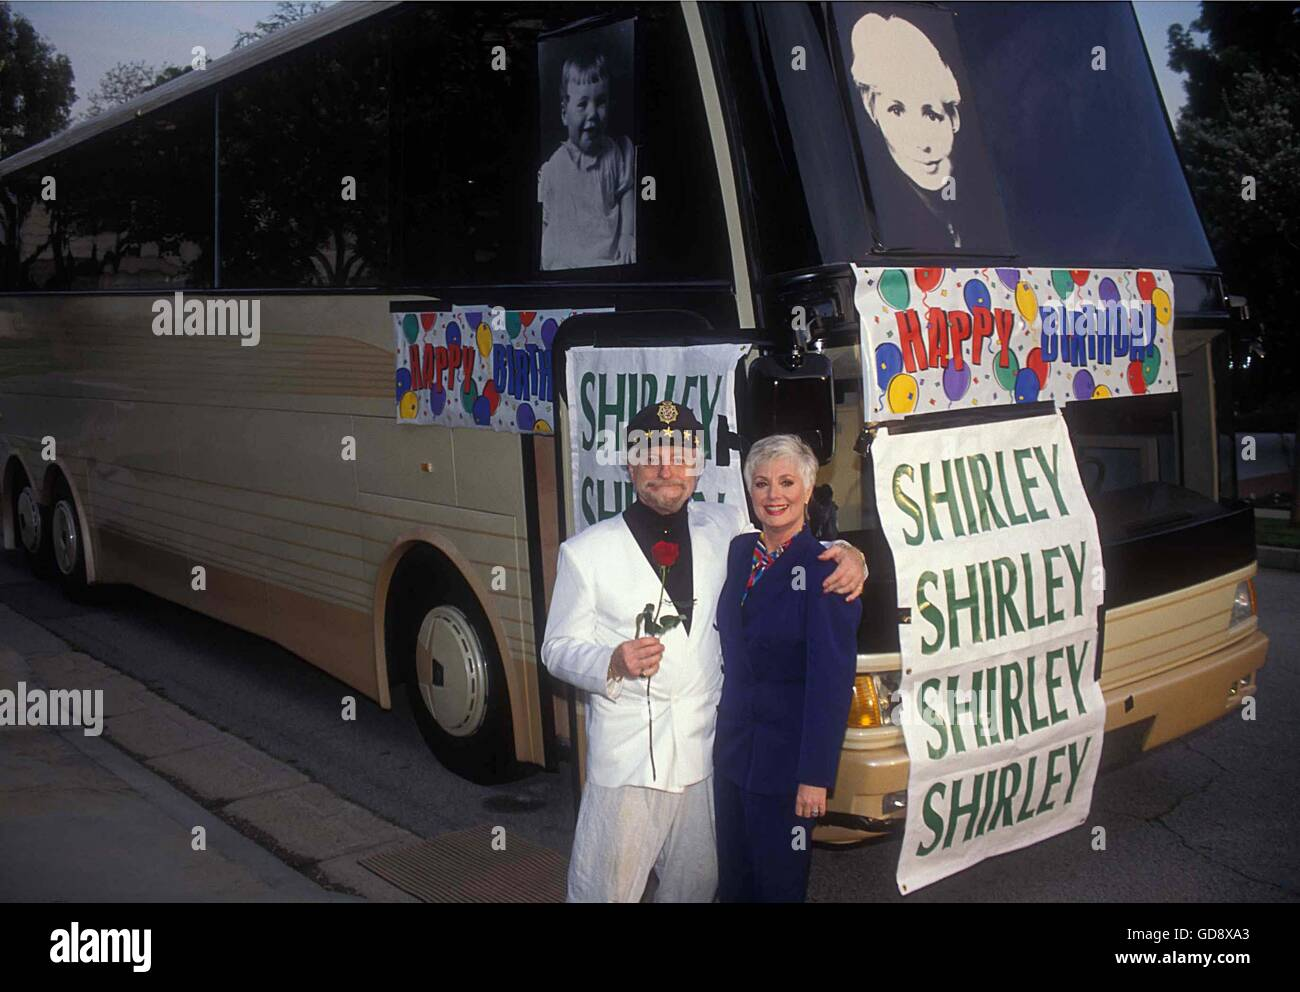 July 11, 2006 - SHIRLEY JONES WITH MARTY INGELS AT THEIR HOME, BEVERLY HILLS WITH .000.000.00 CUSTOM MADE BUS FOR - Stock Image